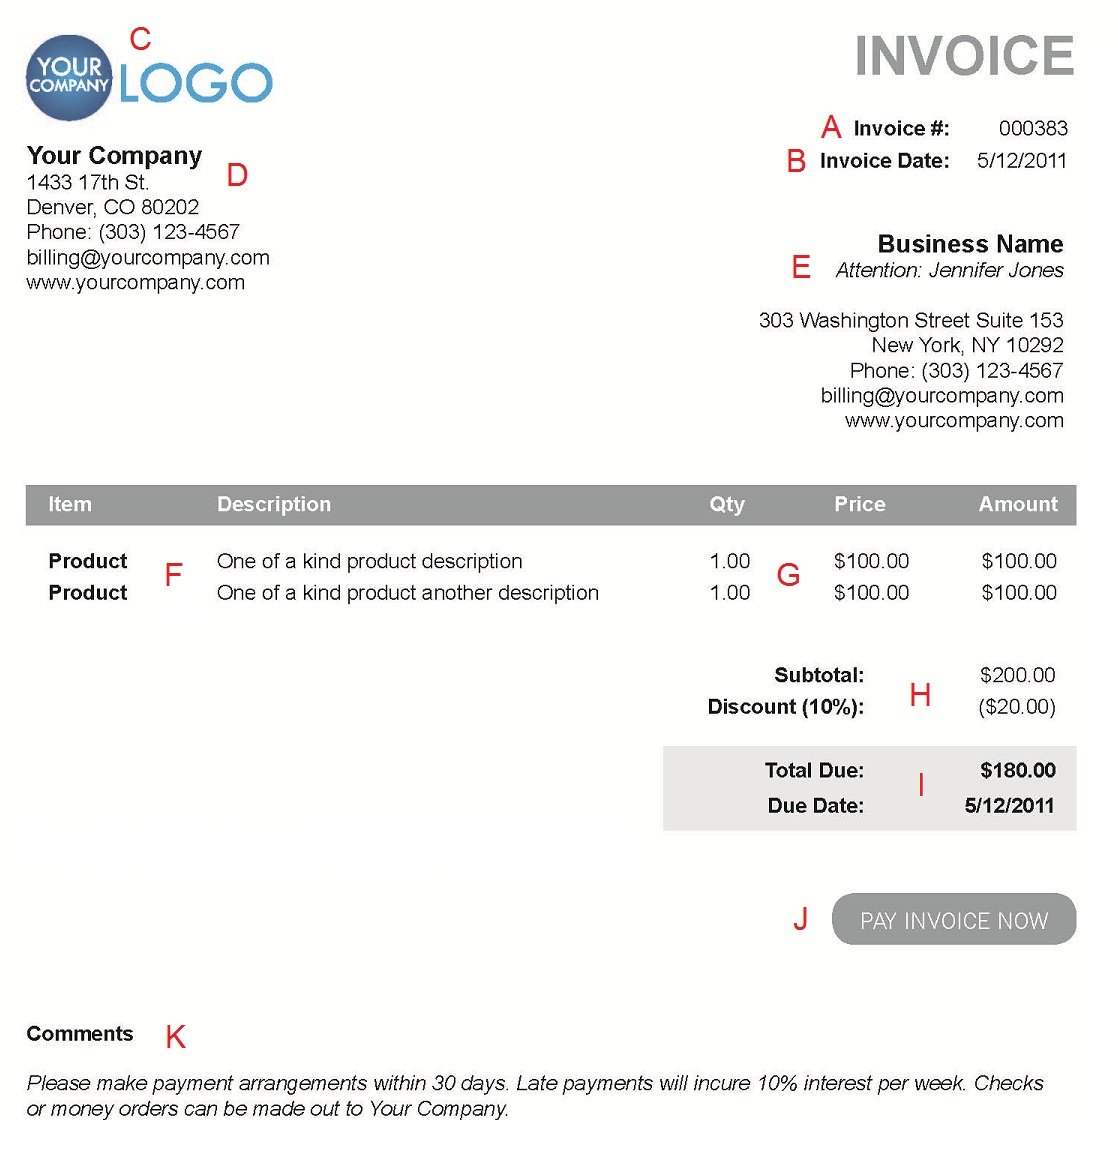 Opposenewapstandardsus  Pleasing The  Different Sections Of An Electronic Payment Invoice With Hot A  With Easy On The Eye Cash Receipt Voucher Sample Also Selling Car Receipt Template In Addition Receipt Of Letter And Bbmp Tax Receipt As Well As Printable Receipt Of Payment Additionally Receipt Printer Font From Paysimplecom With Opposenewapstandardsus  Hot The  Different Sections Of An Electronic Payment Invoice With Easy On The Eye A  And Pleasing Cash Receipt Voucher Sample Also Selling Car Receipt Template In Addition Receipt Of Letter From Paysimplecom